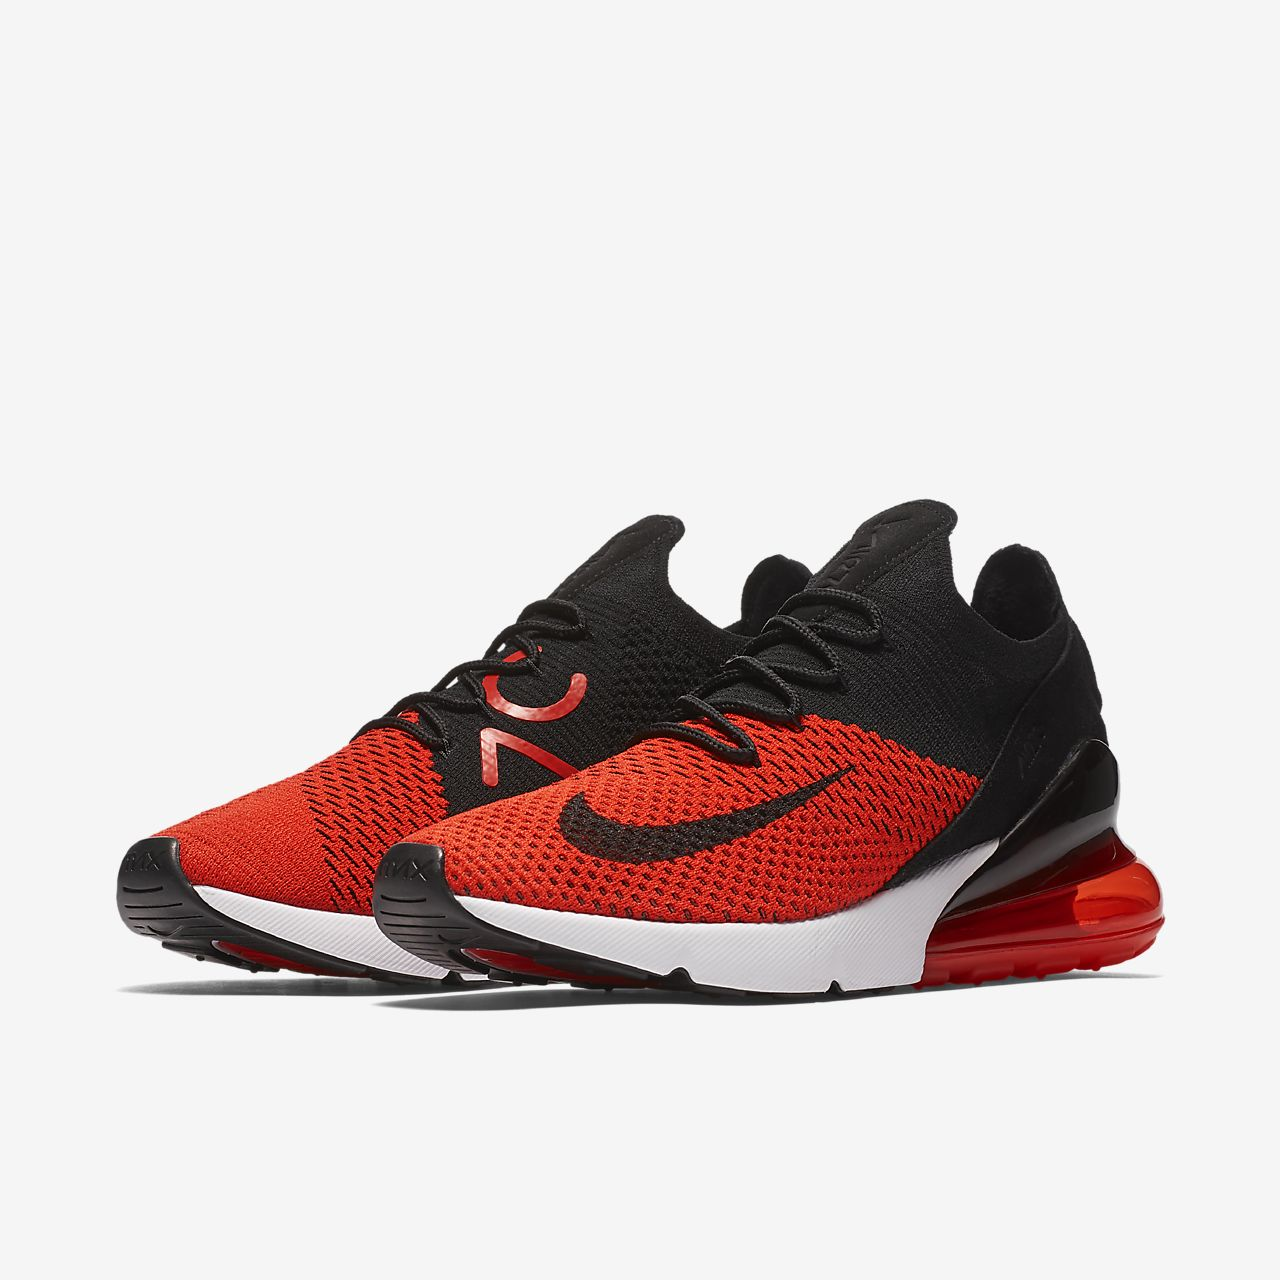 timeless design e5a92 42313 Men s Shoe. Nike Air Max 270 Flyknit